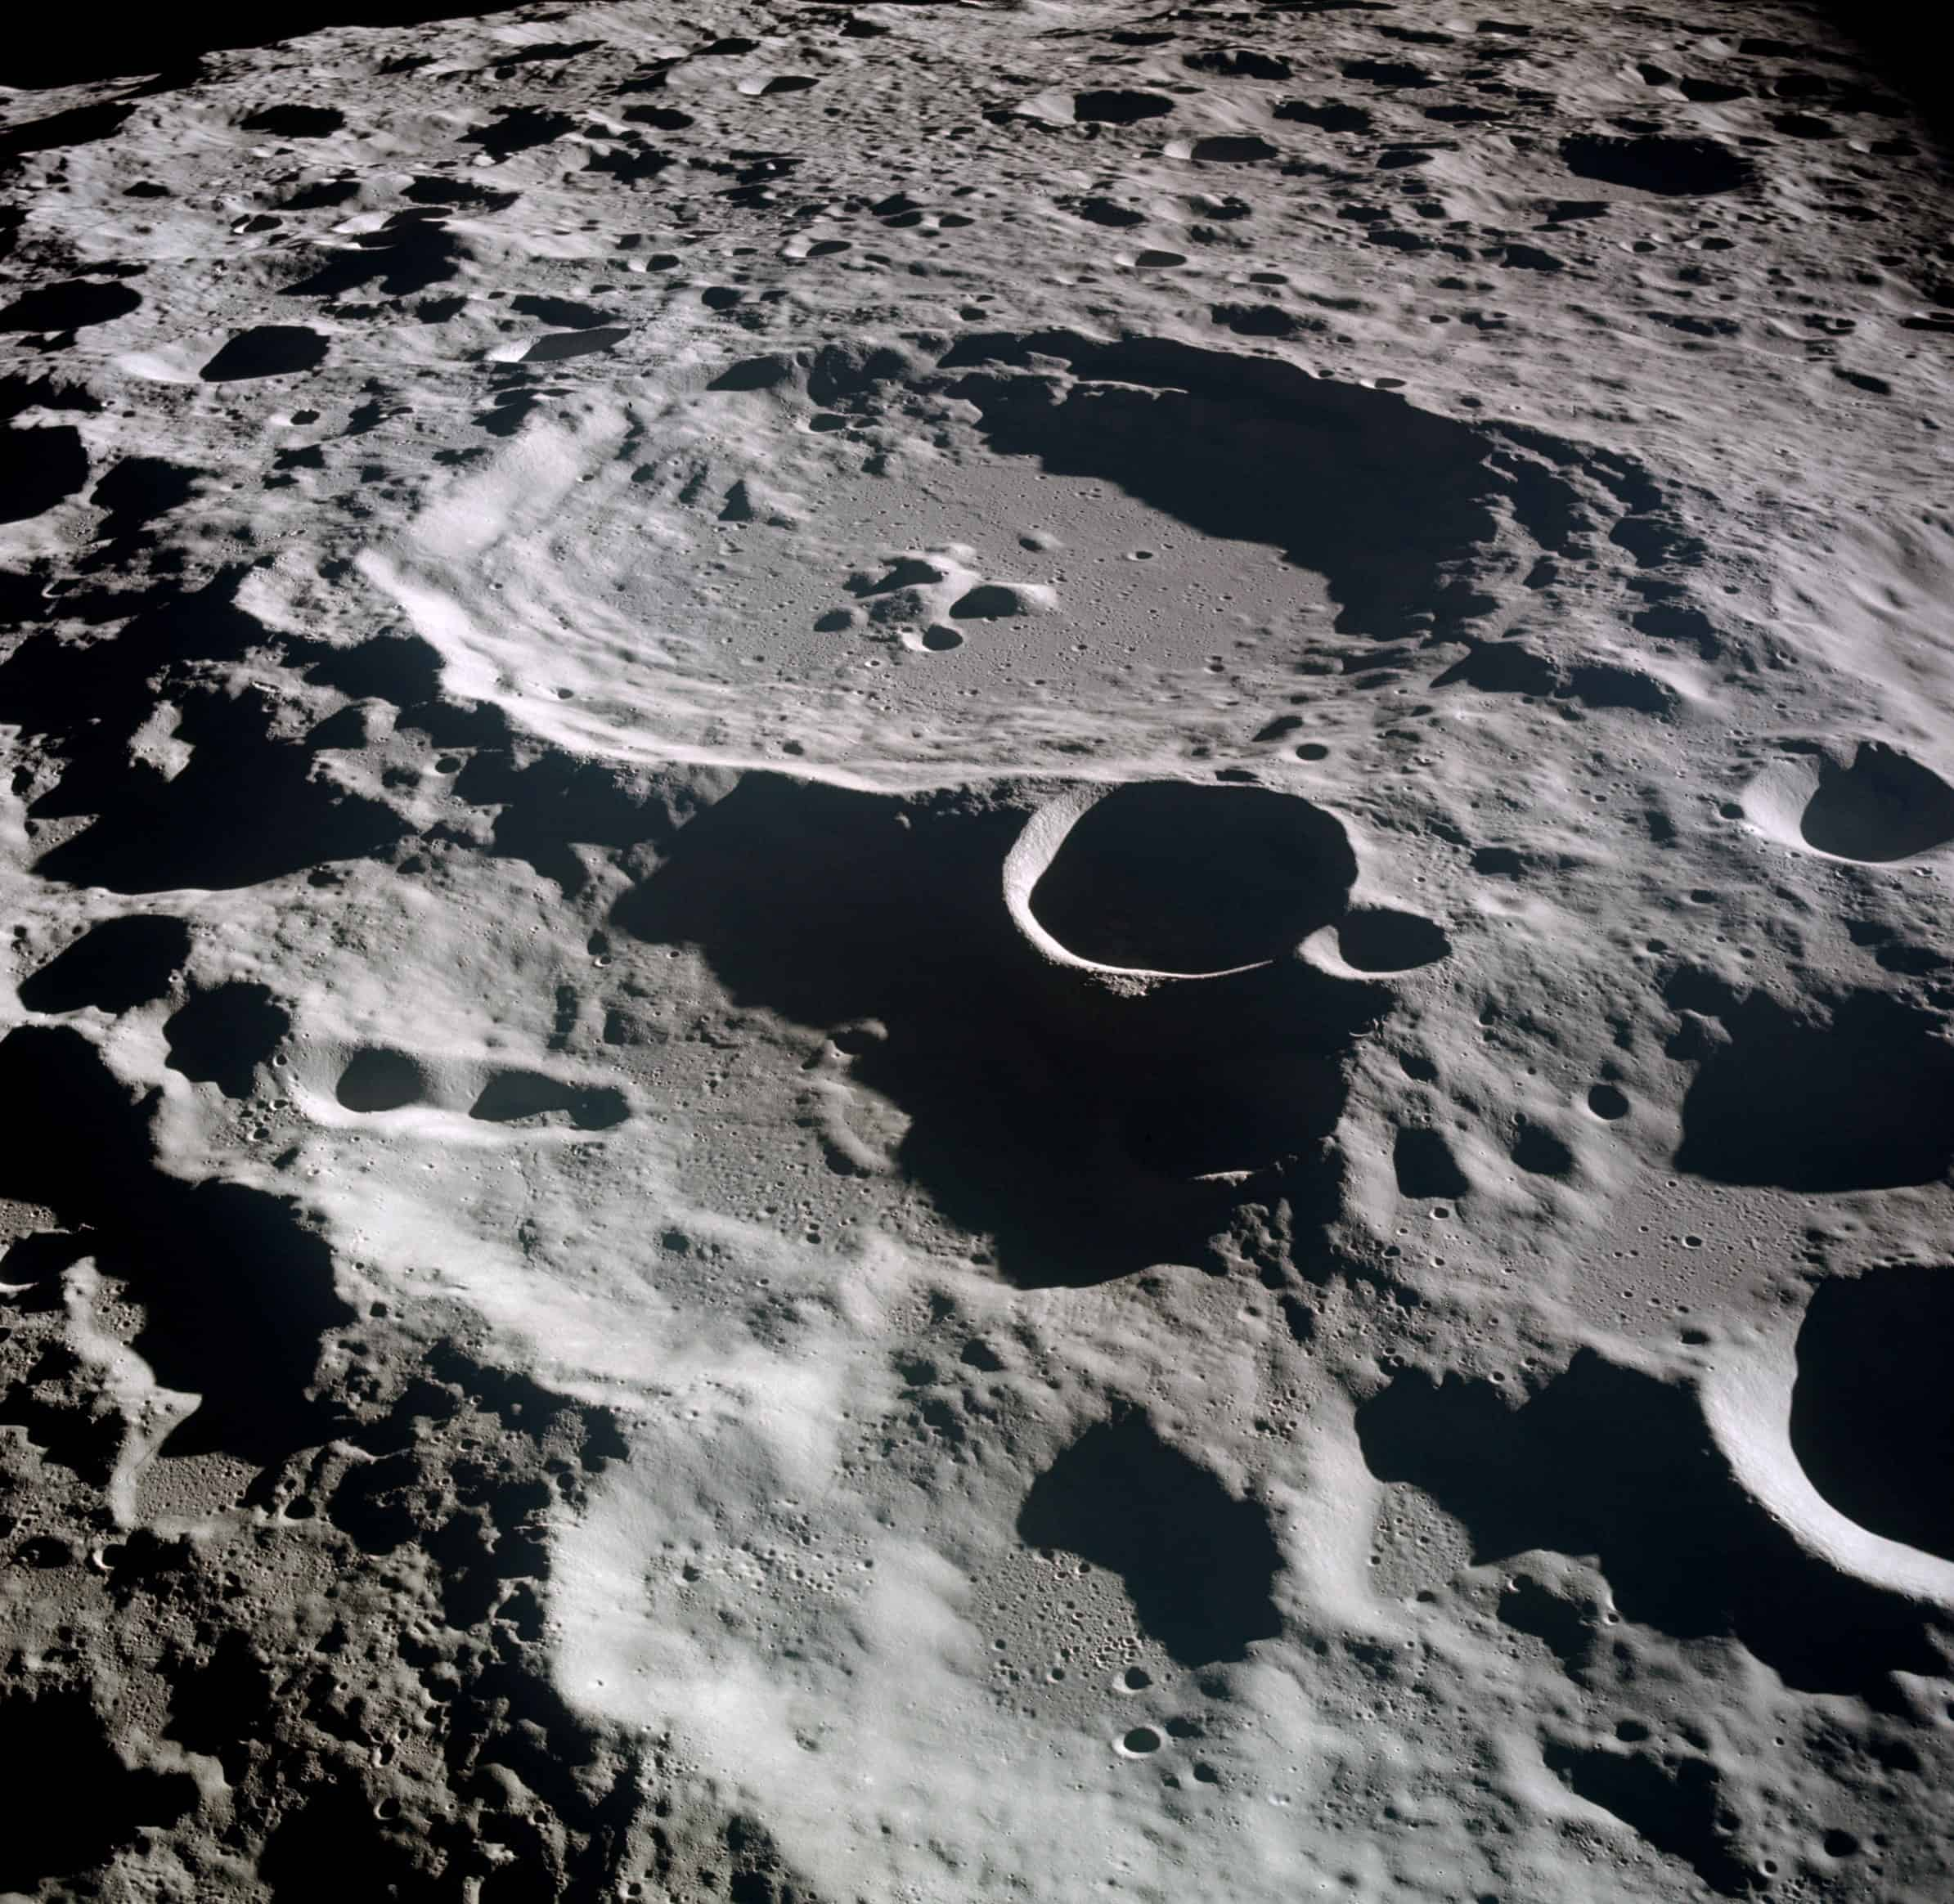 A typical crater on the moon